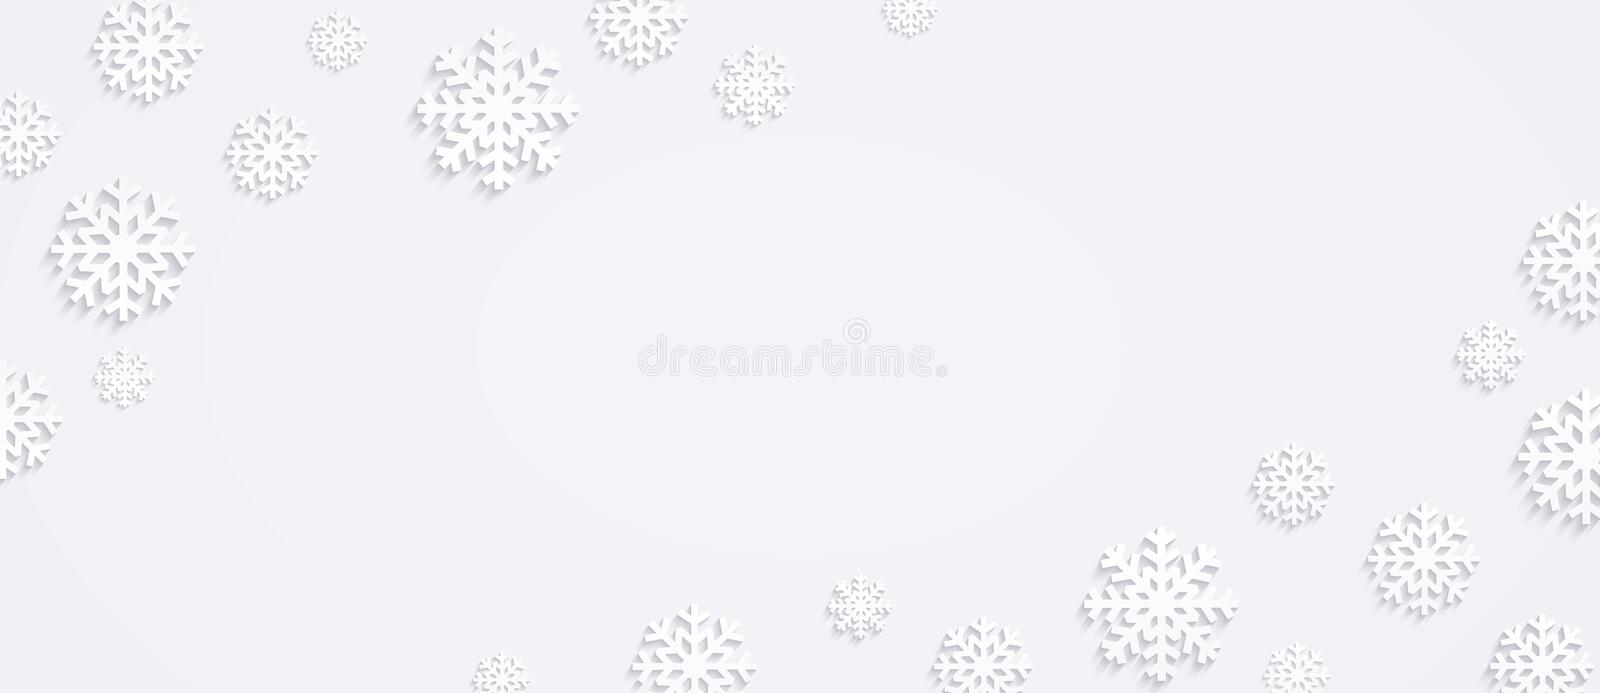 Christmas background with snowflakes, horizontal winter composition, flat design of snowflakes, top view stock illustration